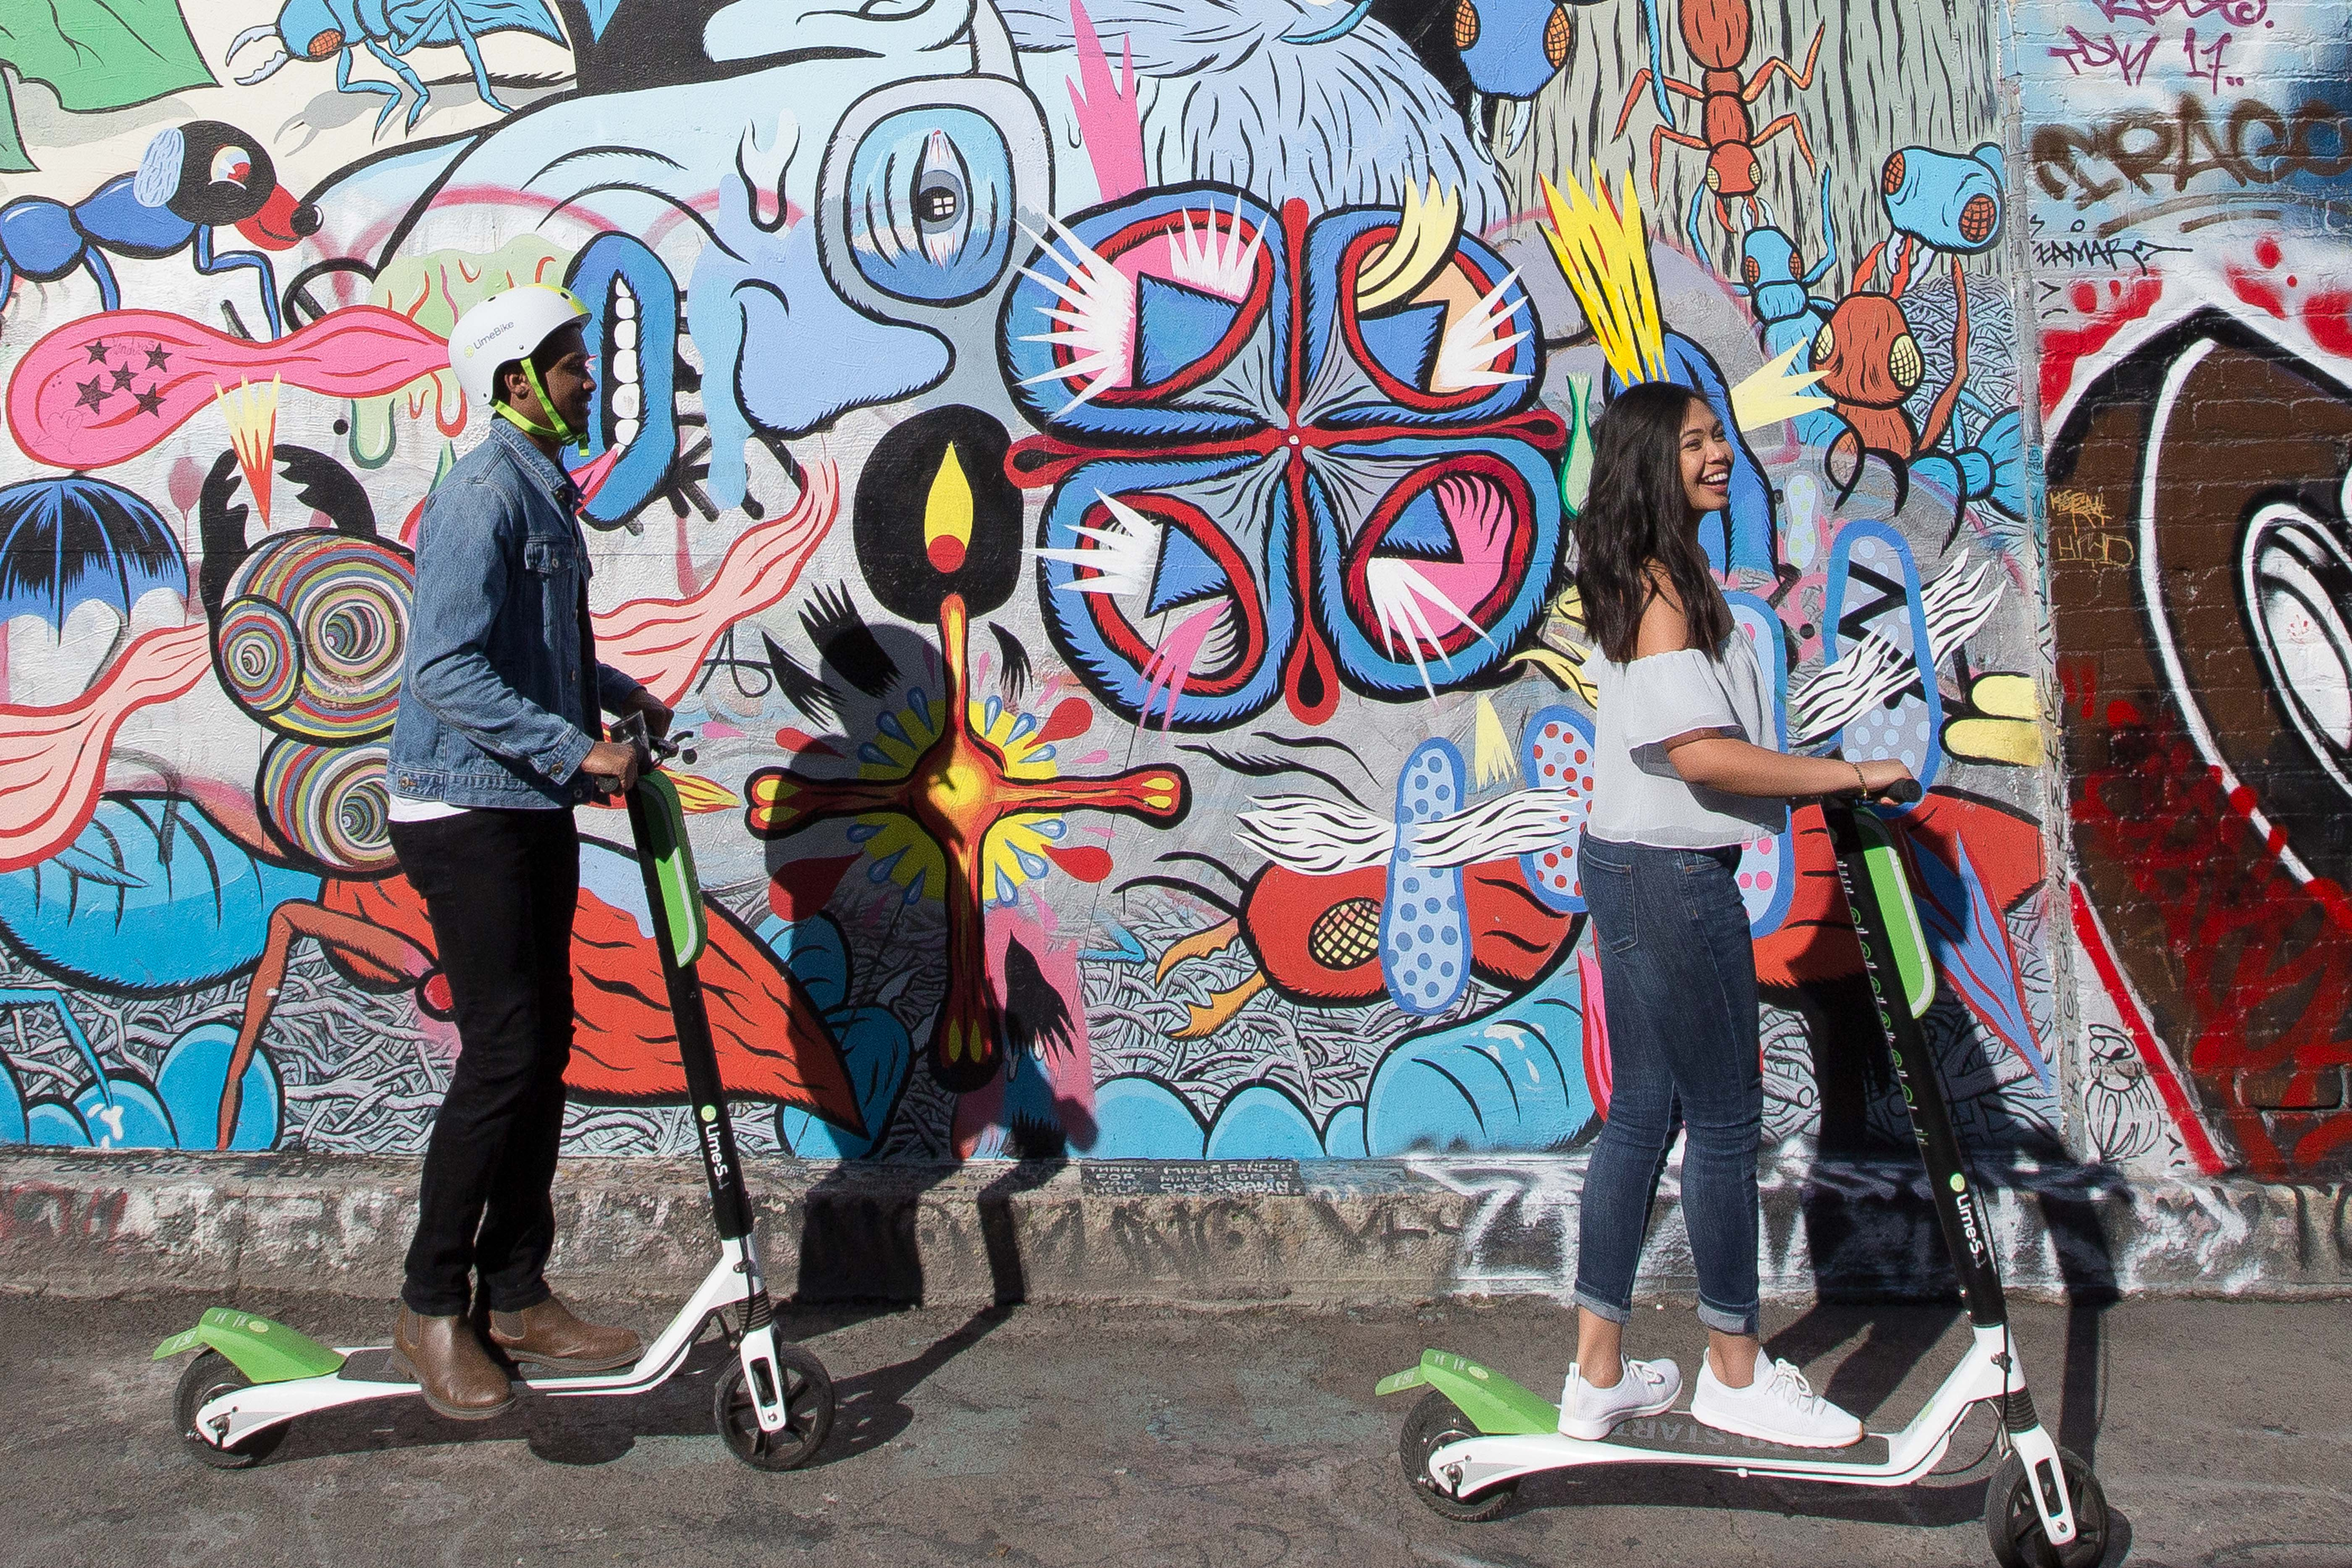 Two people on Lime scooters in front of a colorful mural